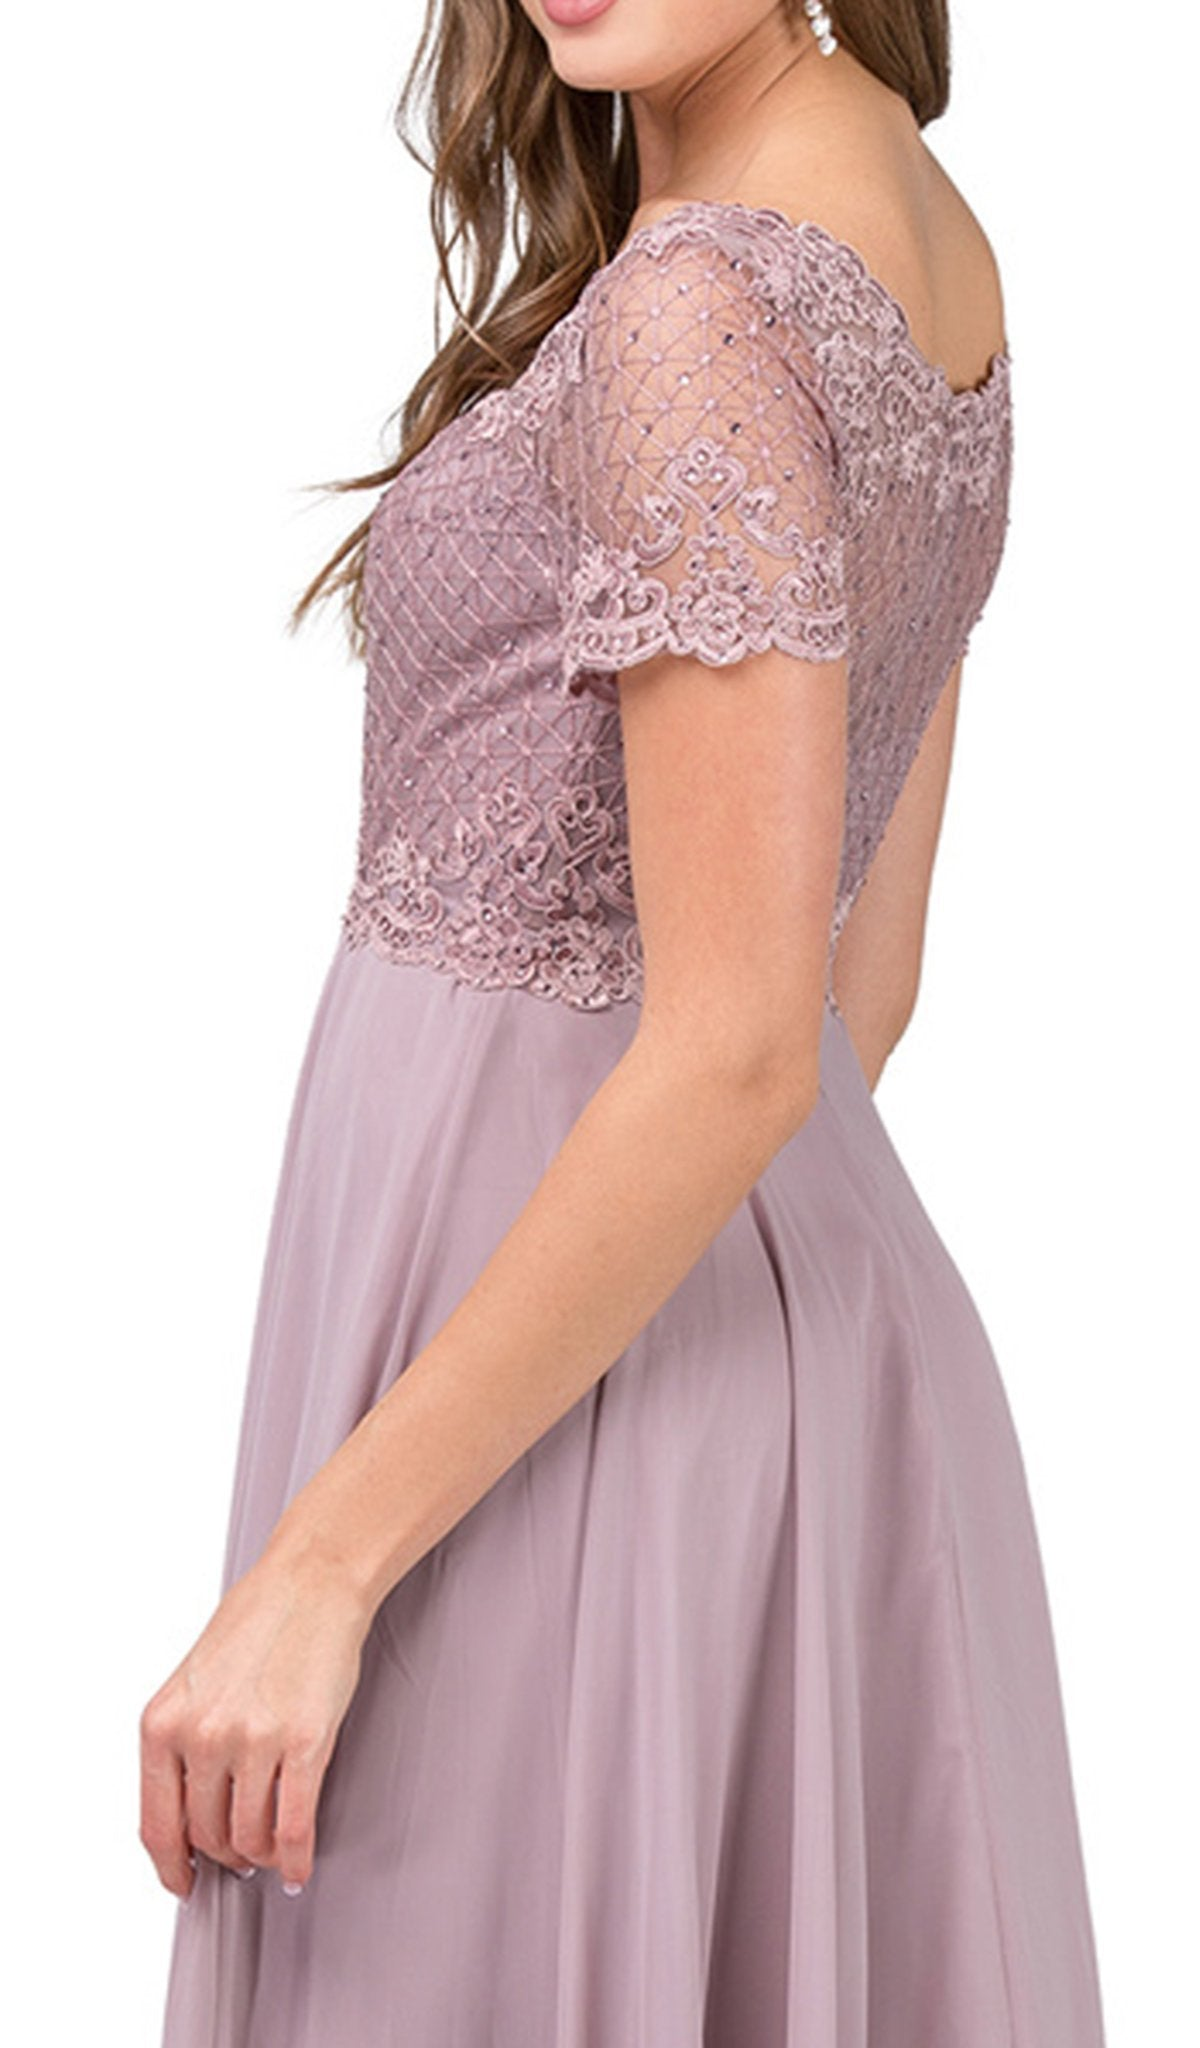 Dancing Queen - Short Sleeve Illusion Lattice Ornate A-Line Gown 2268 In Pink